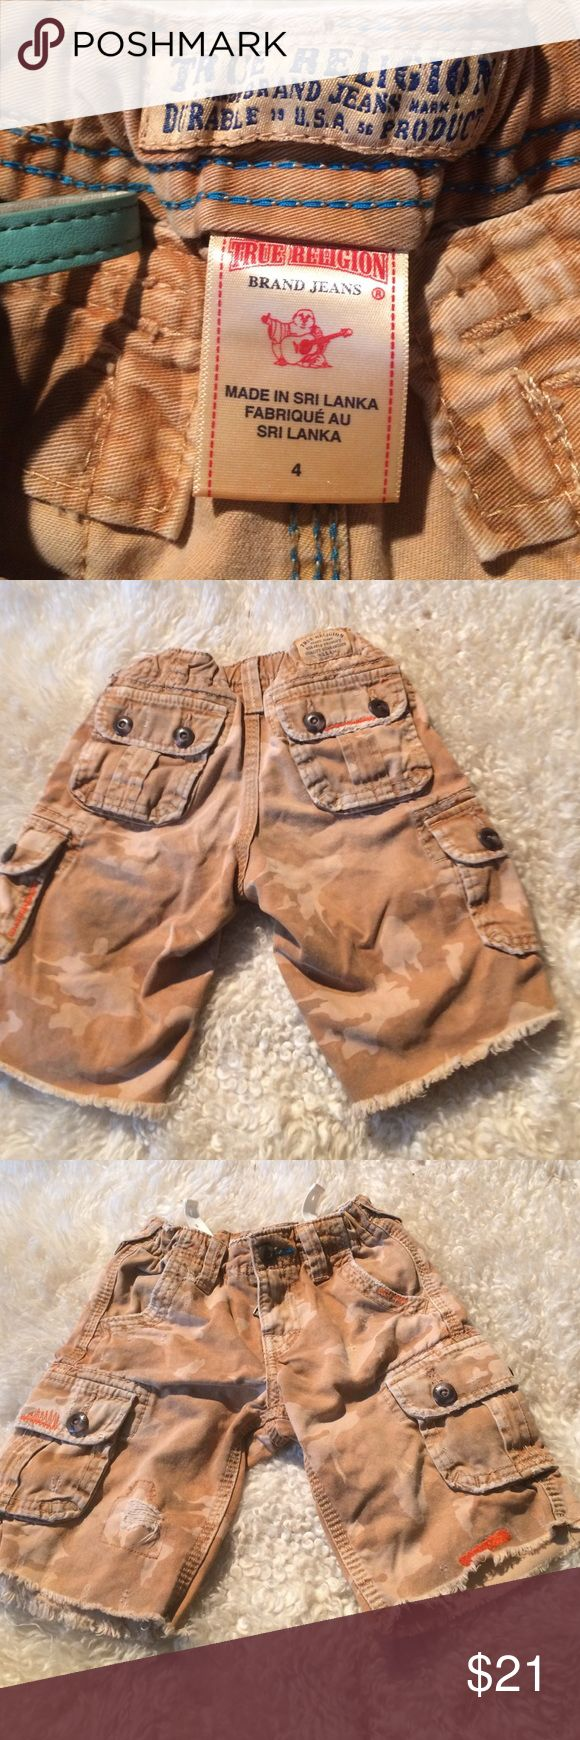 True religion Size 4 cargo pants cut offs too cute True legend size for pargo jeans for pockets in front two pockets and back with adjustable waist wraps camouflage design distressed please note all pictures still say way too cute True Religion Bottoms Jeans